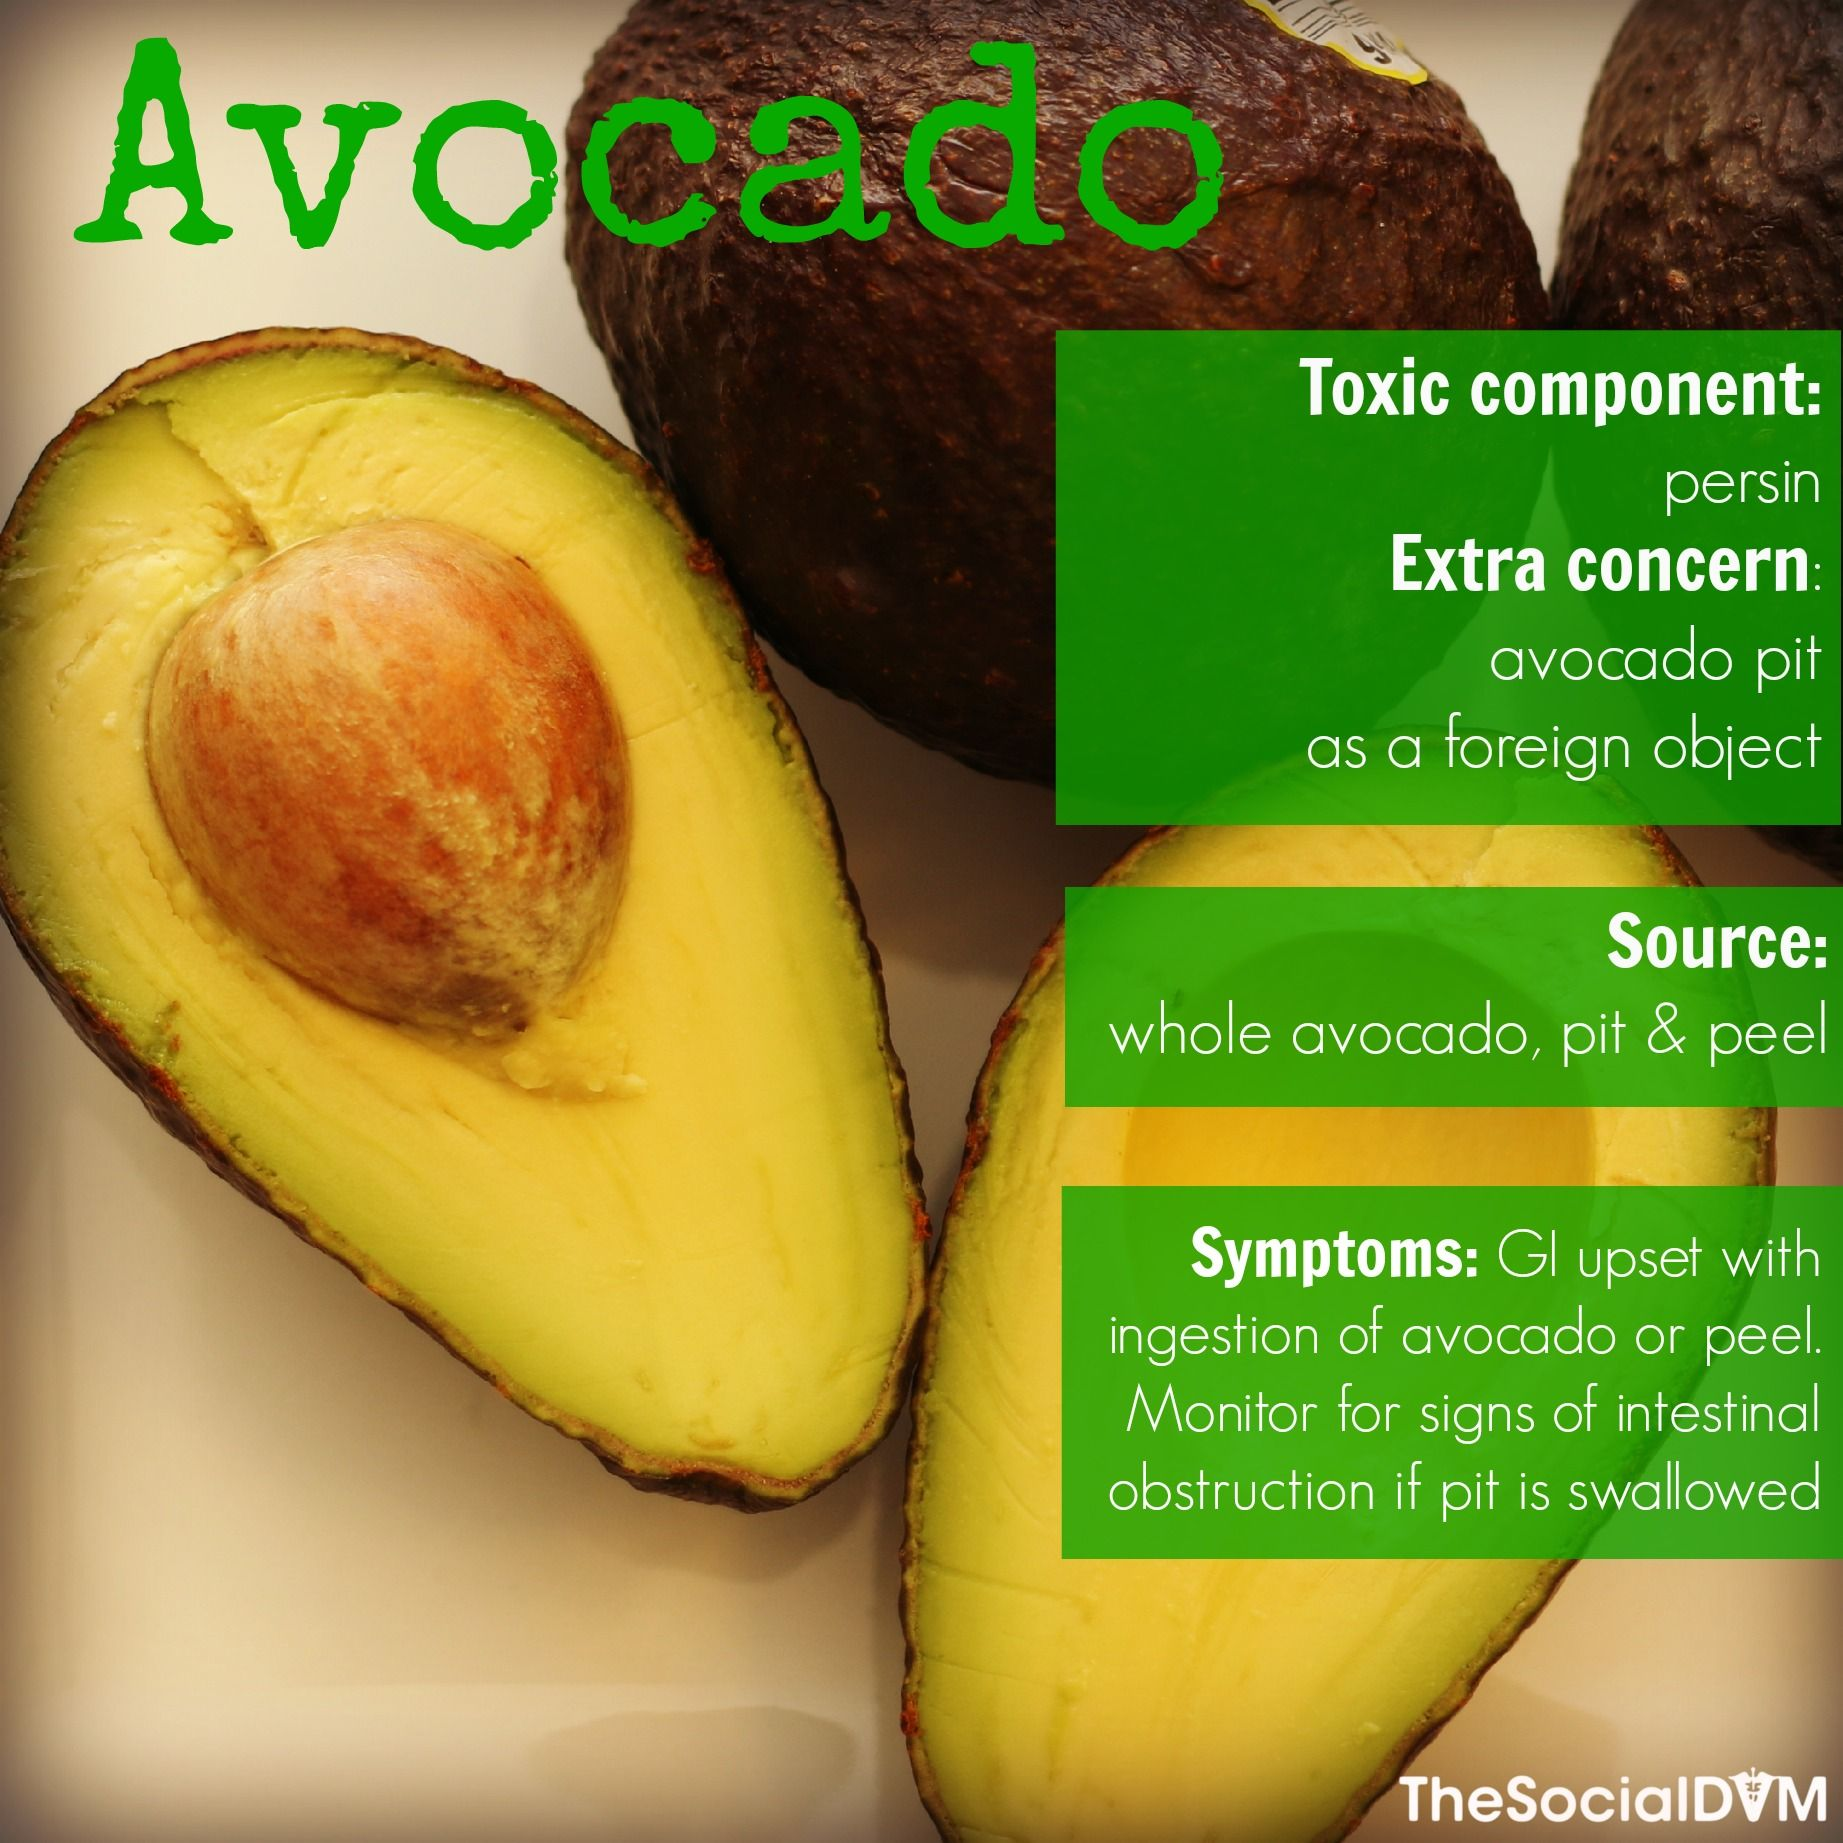 Calmly Generally Is Raw Avocado Bad Generally Acceptedas Safe When Not Necessarily A Concern Cats Cats Dogs Dogs Is Avocado Oil Safe Not Necessarily A Concern Dogs Dogs To Eat bark post Is Avocado Safe For Dogs